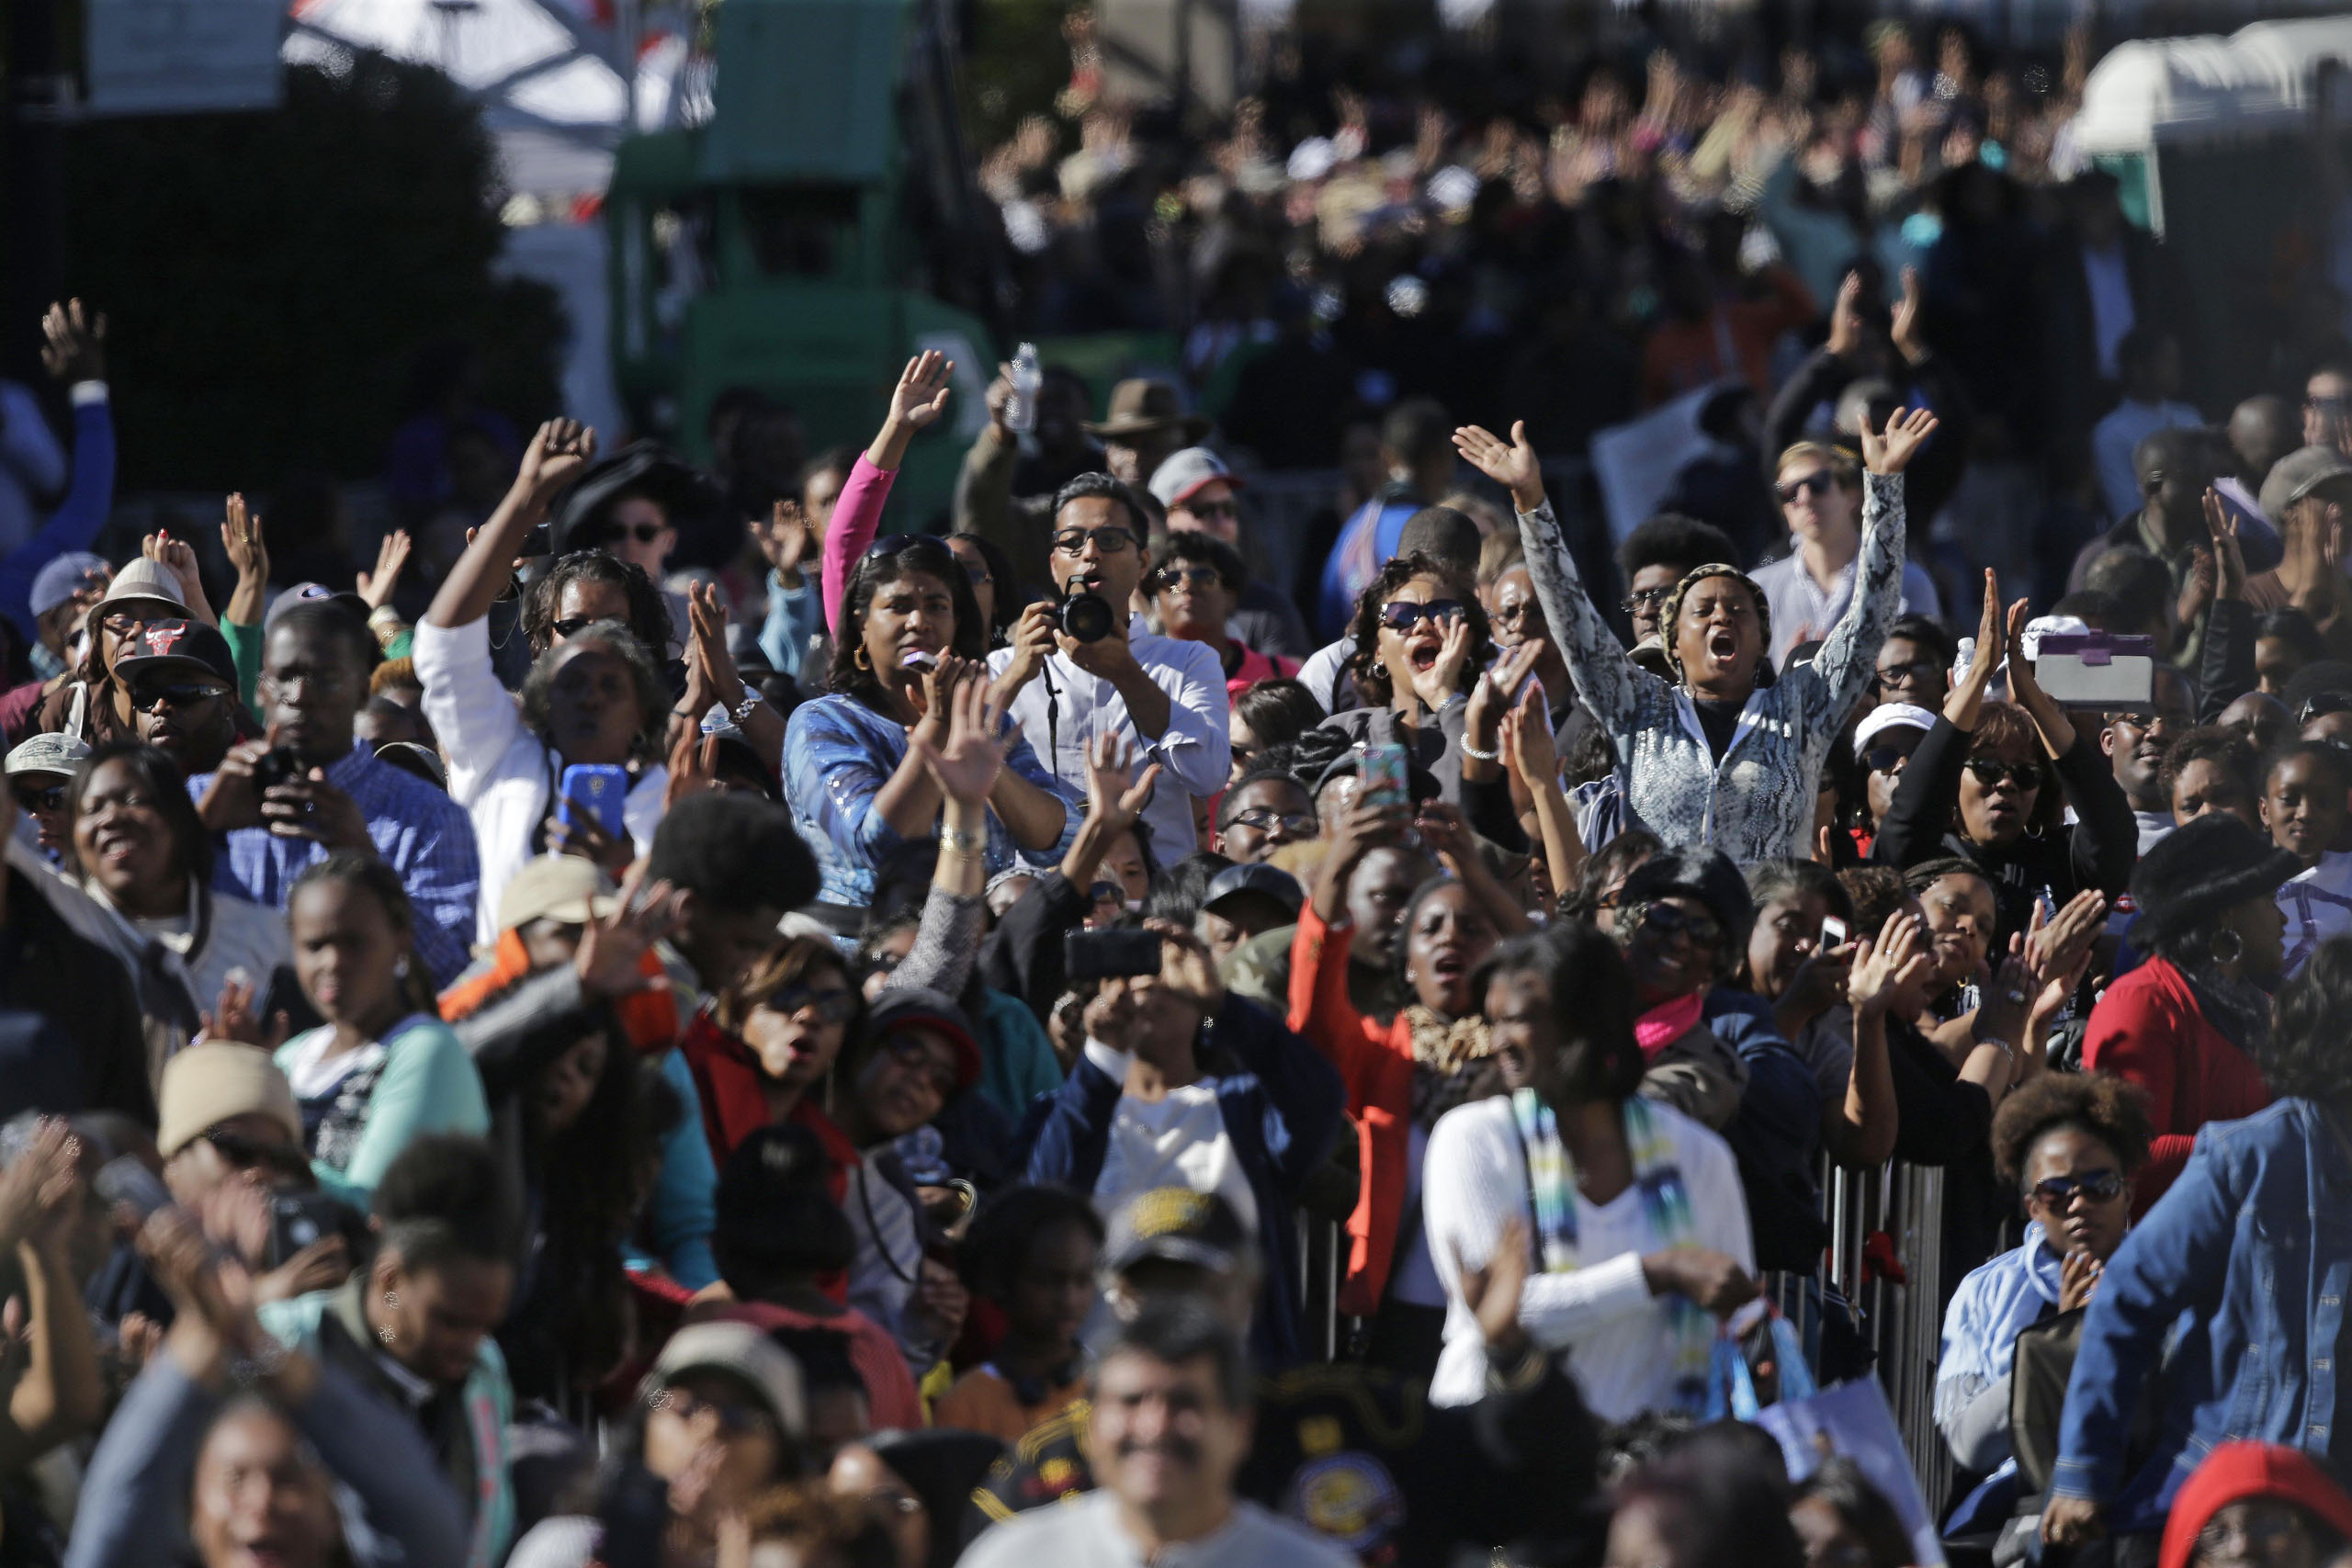 The crowd takes photos and cheer for President Barack Obama as he speaks near the Edmund Pettus Bridge in Selma, Ala. on March 7, 2015.